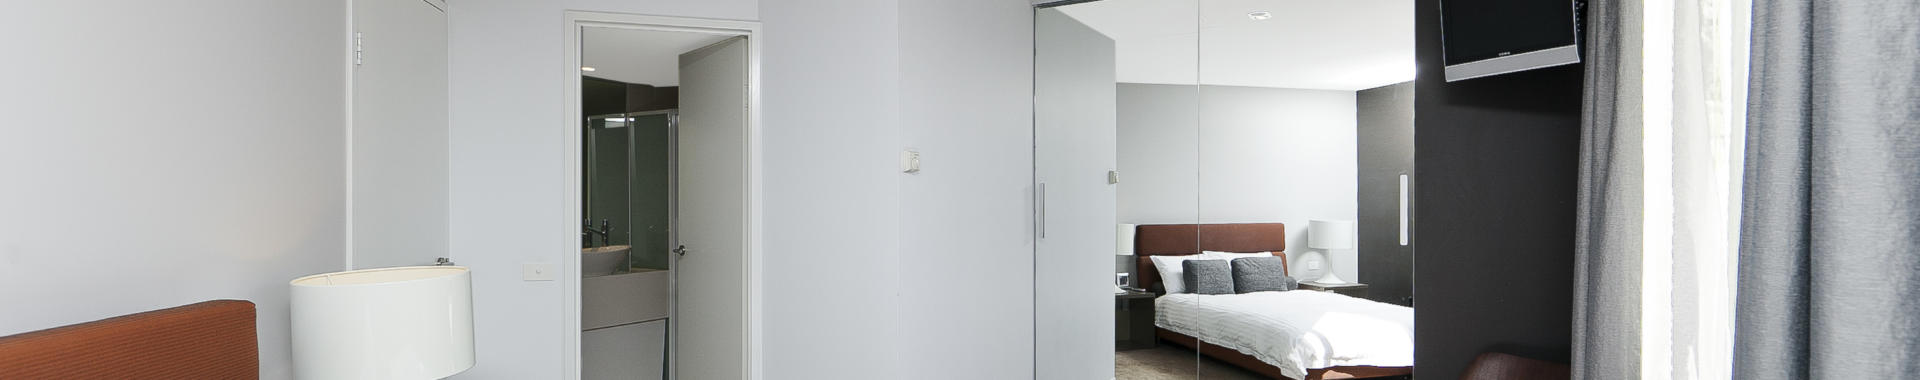 Canberra Tench 2 bed corporate apartment bedroom